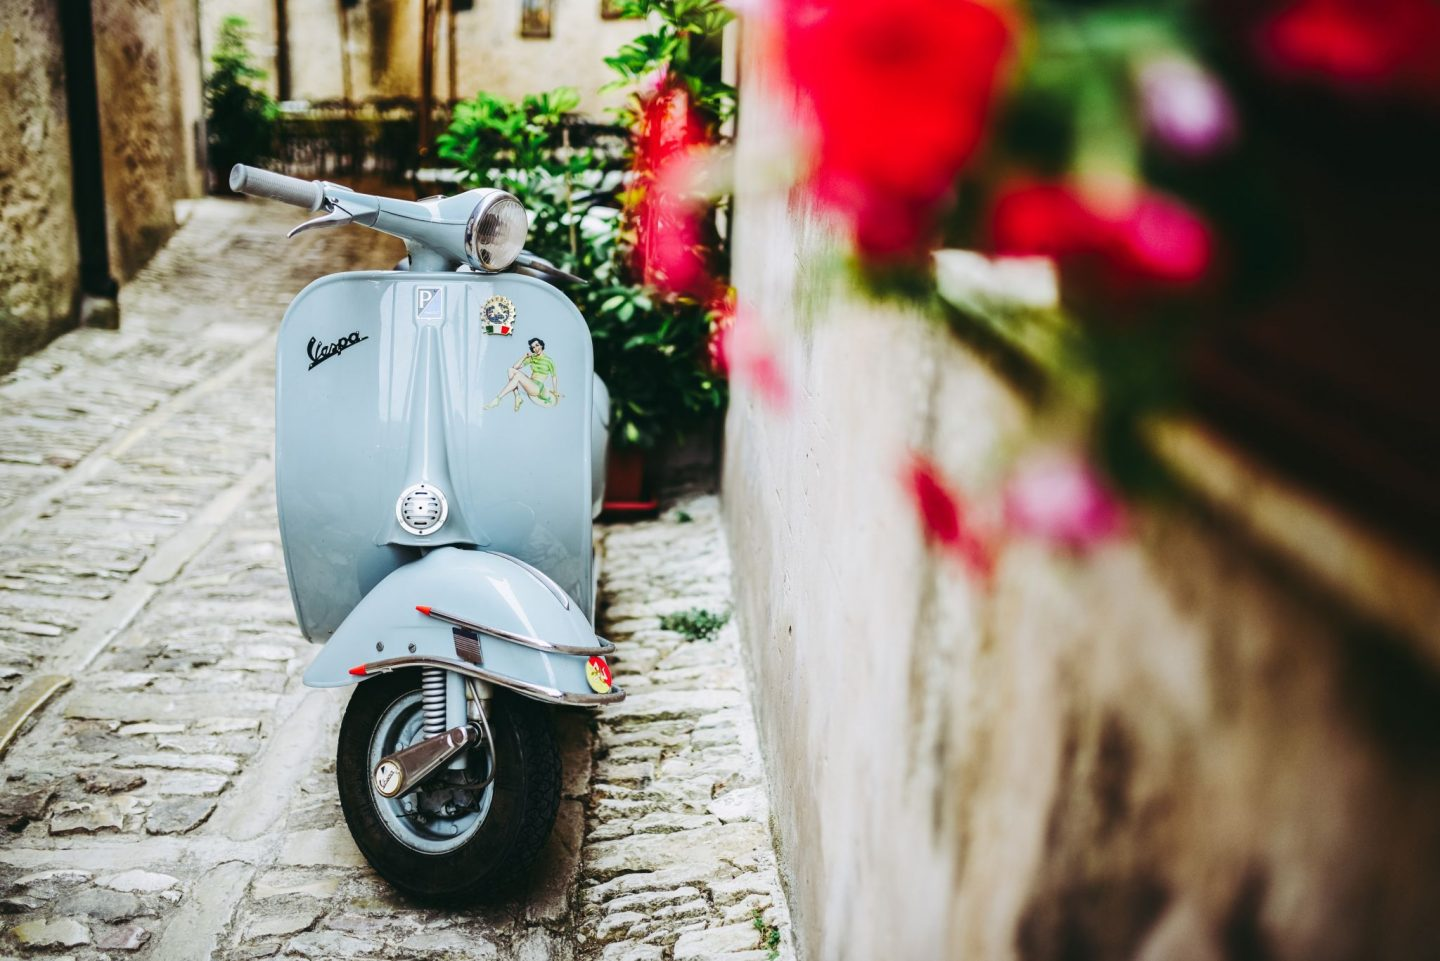 vespa, scooter, street, flowers, traveling, explore